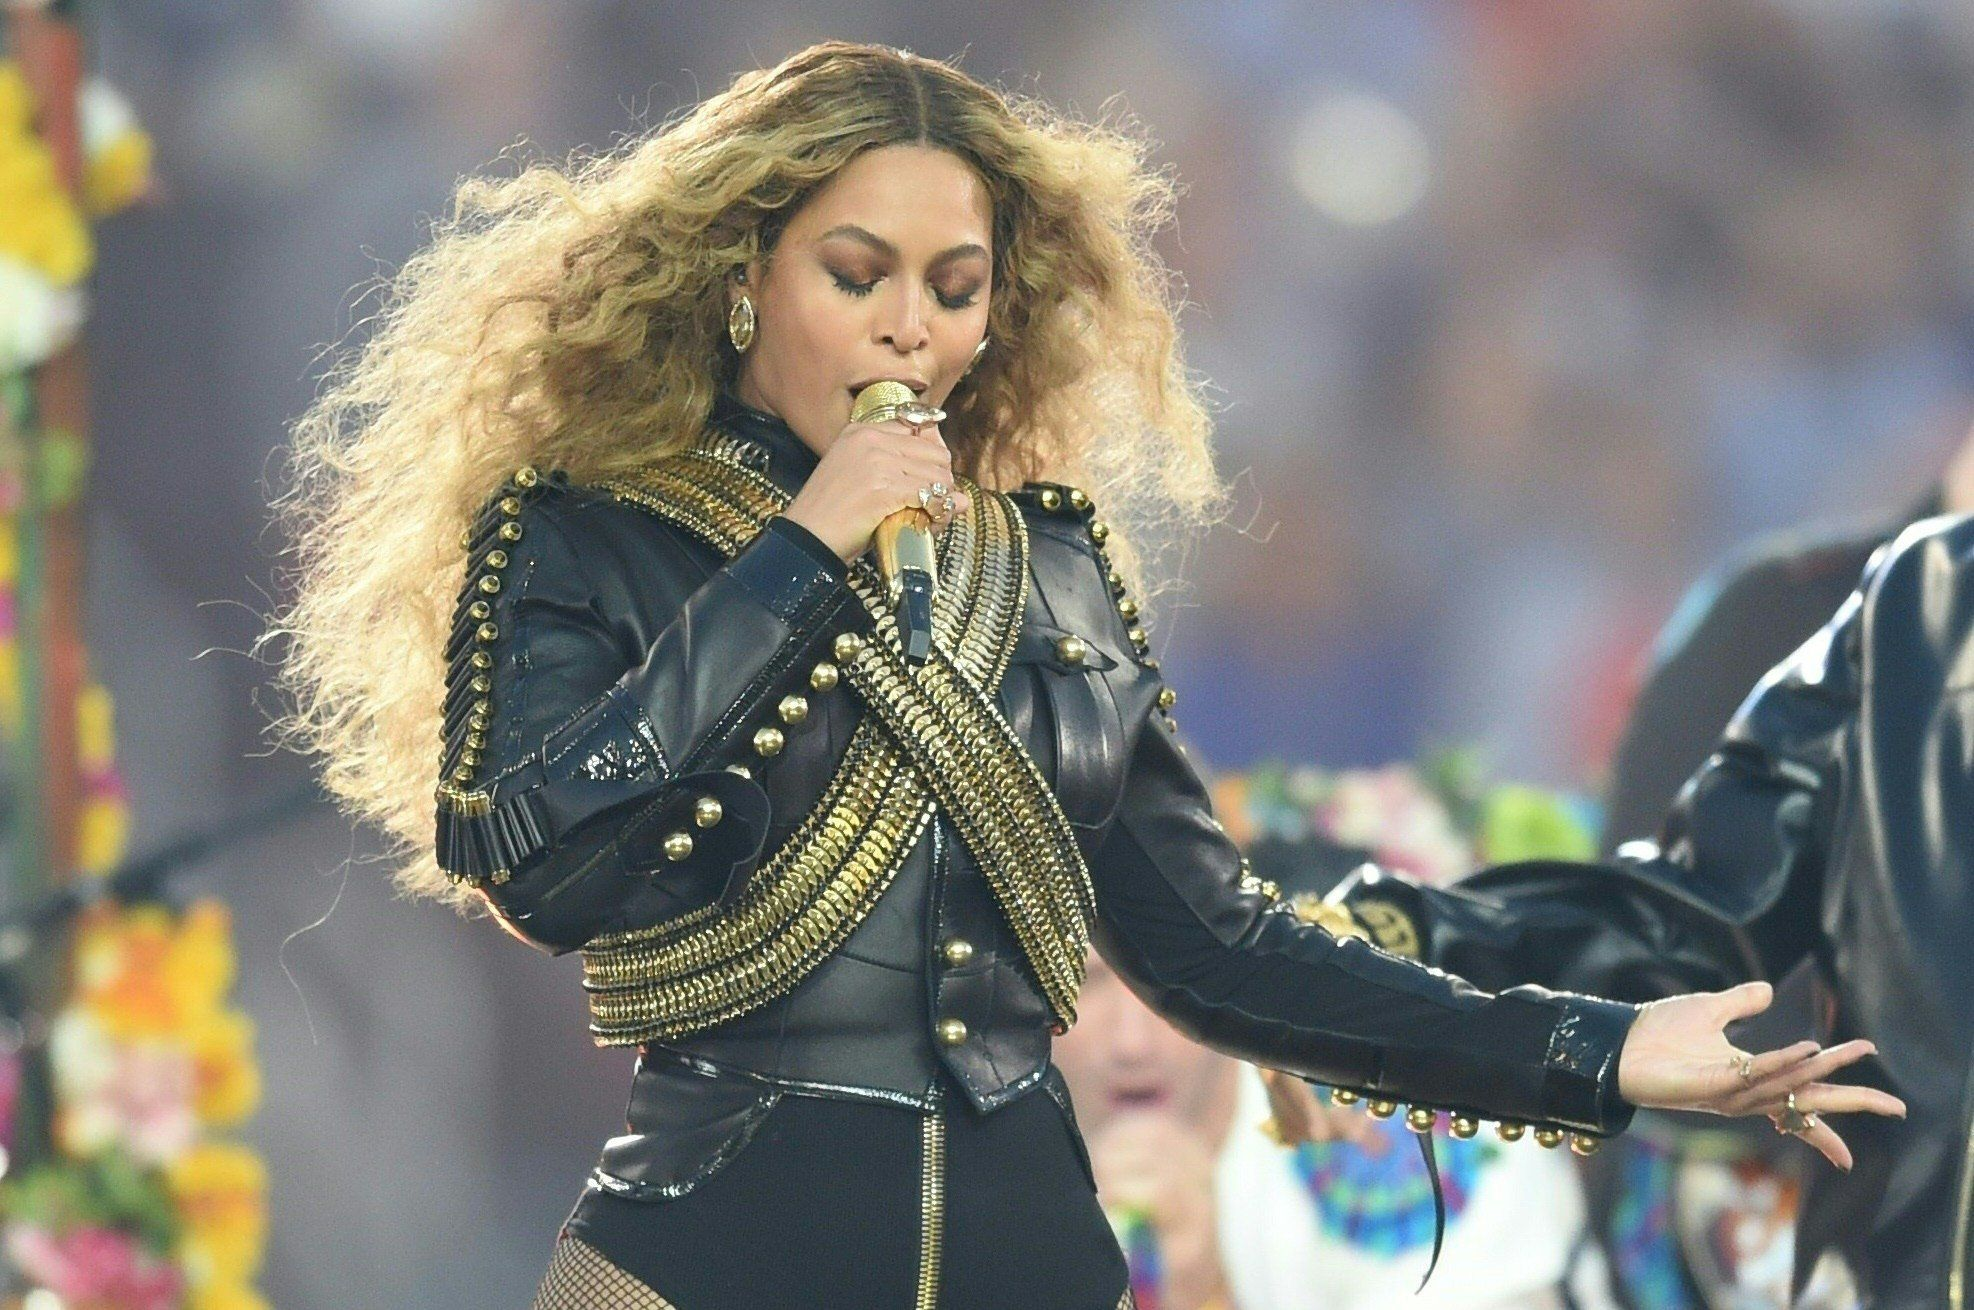 Beyonce performs during Super Bowl 50 between the Carolina Panthers and the Denver Broncos at Levi's Stadium in Santa Clara, California February 7, 2016. / AFP / TIMOTHY A. CLARY        (Photo credit should read TIMOTHY A. CLARY/AFP/Getty Images)